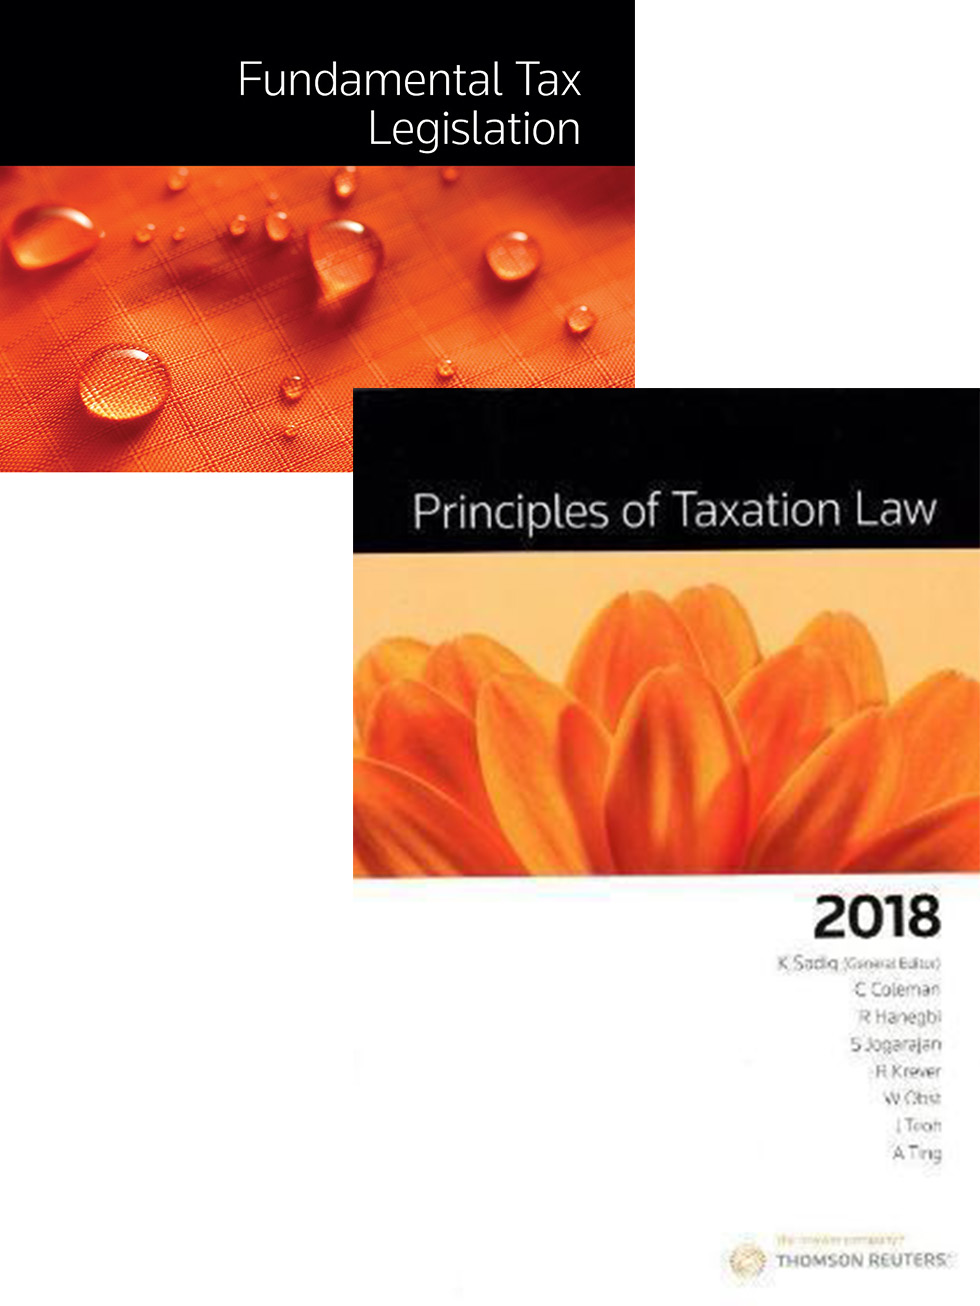 Tax Kit 2 2018 (Fundamental Tax Legislation 2018/ Principles of Taxation Law 2018)